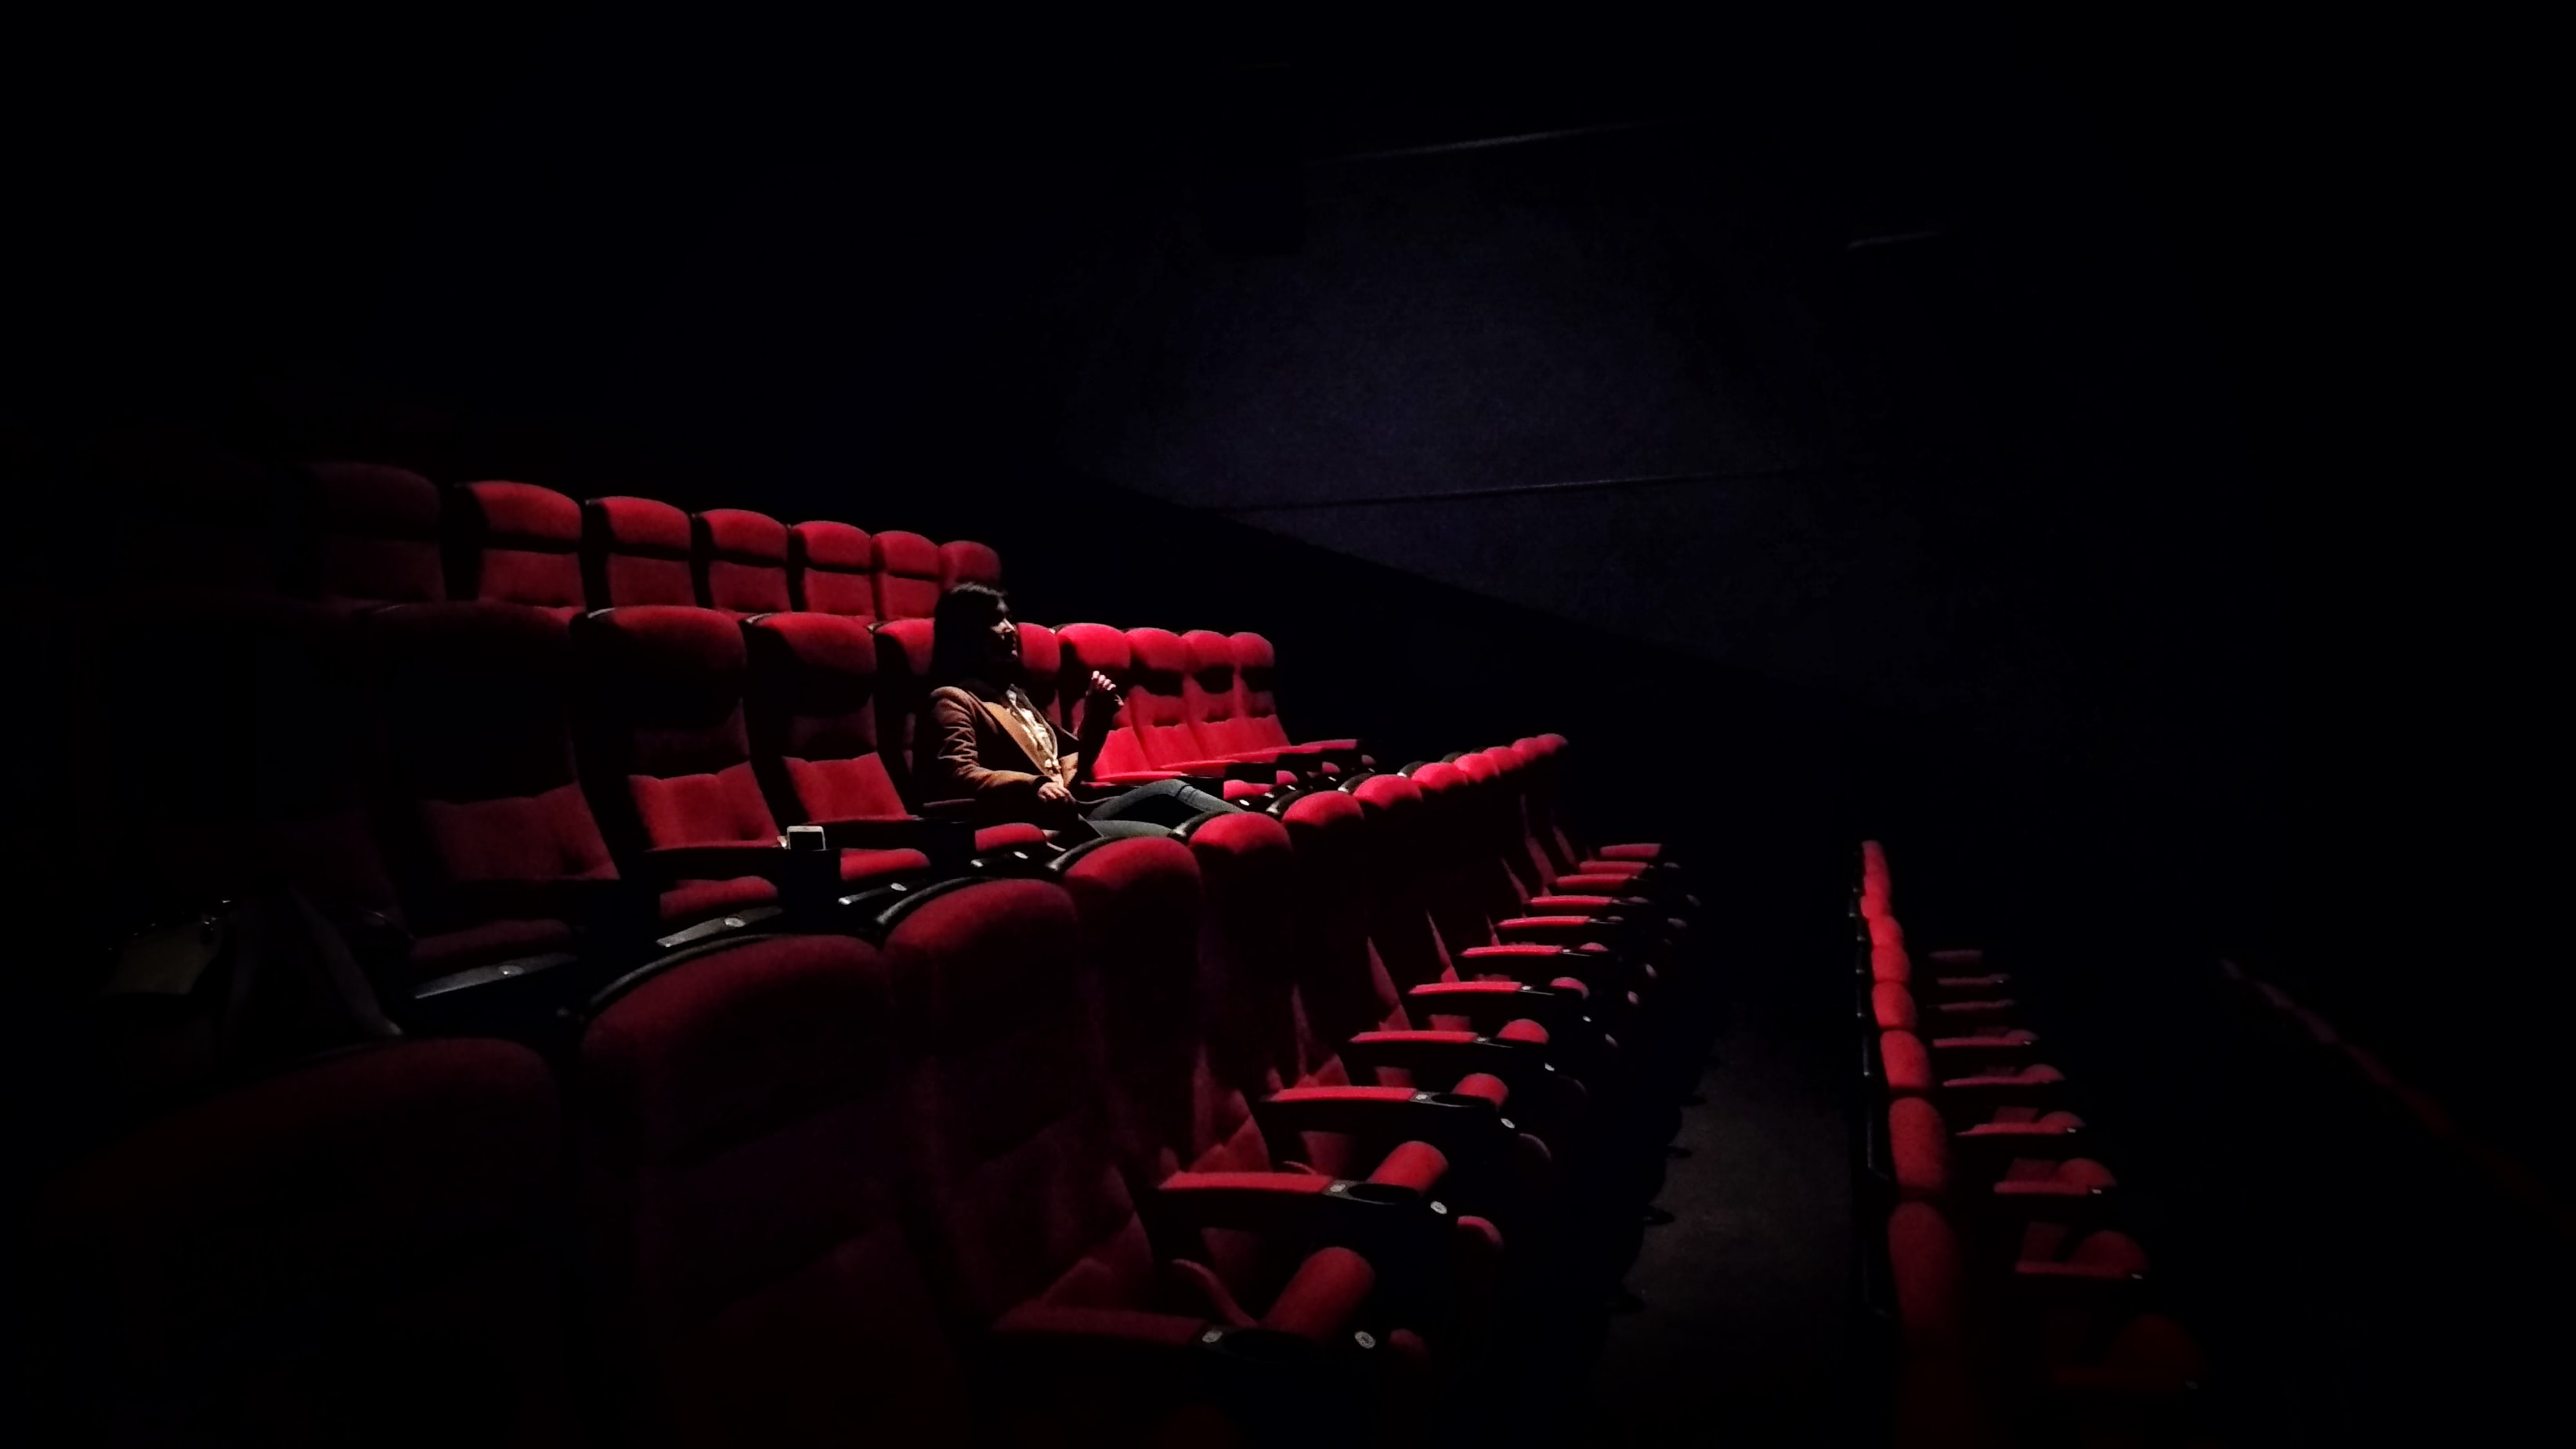 Picture this: 8 possible endings for cinema as COVID pushes it to